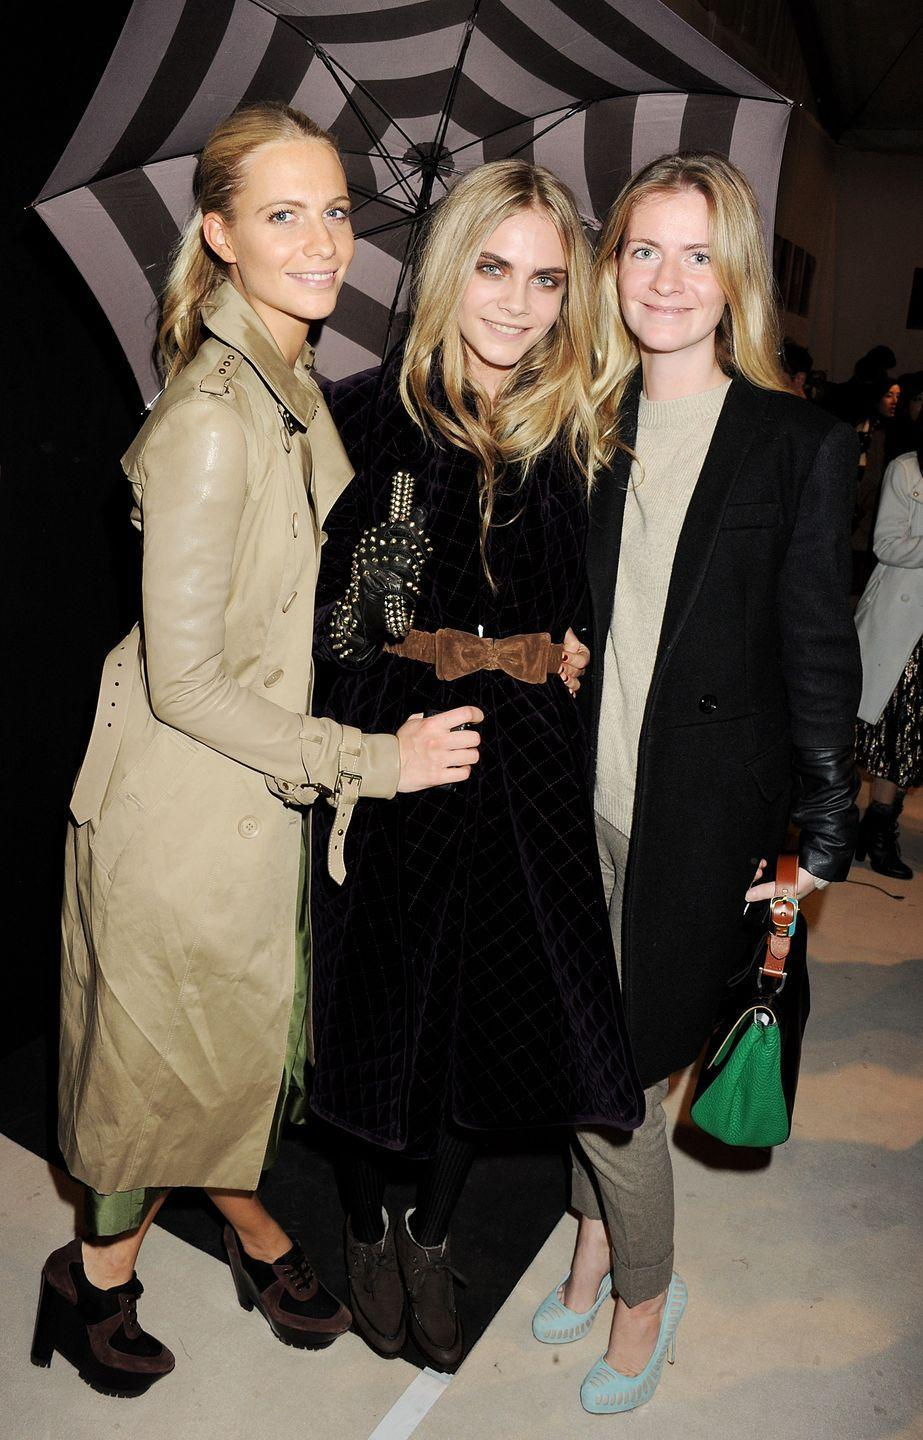 "<p>Cara and Poppy Delevingne are both in the spotlight, and the oldest of the siblings, Chloe, is a well-known socialite in London. She also just joined her sisters as a business partner for their vegan prosecco, <a href=""https://dellavite.com/"" rel=""nofollow noopener"" target=""_blank"" data-ylk=""slk:Della Vite"" class=""link rapid-noclick-resp"">Della Vite</a>. </p>"